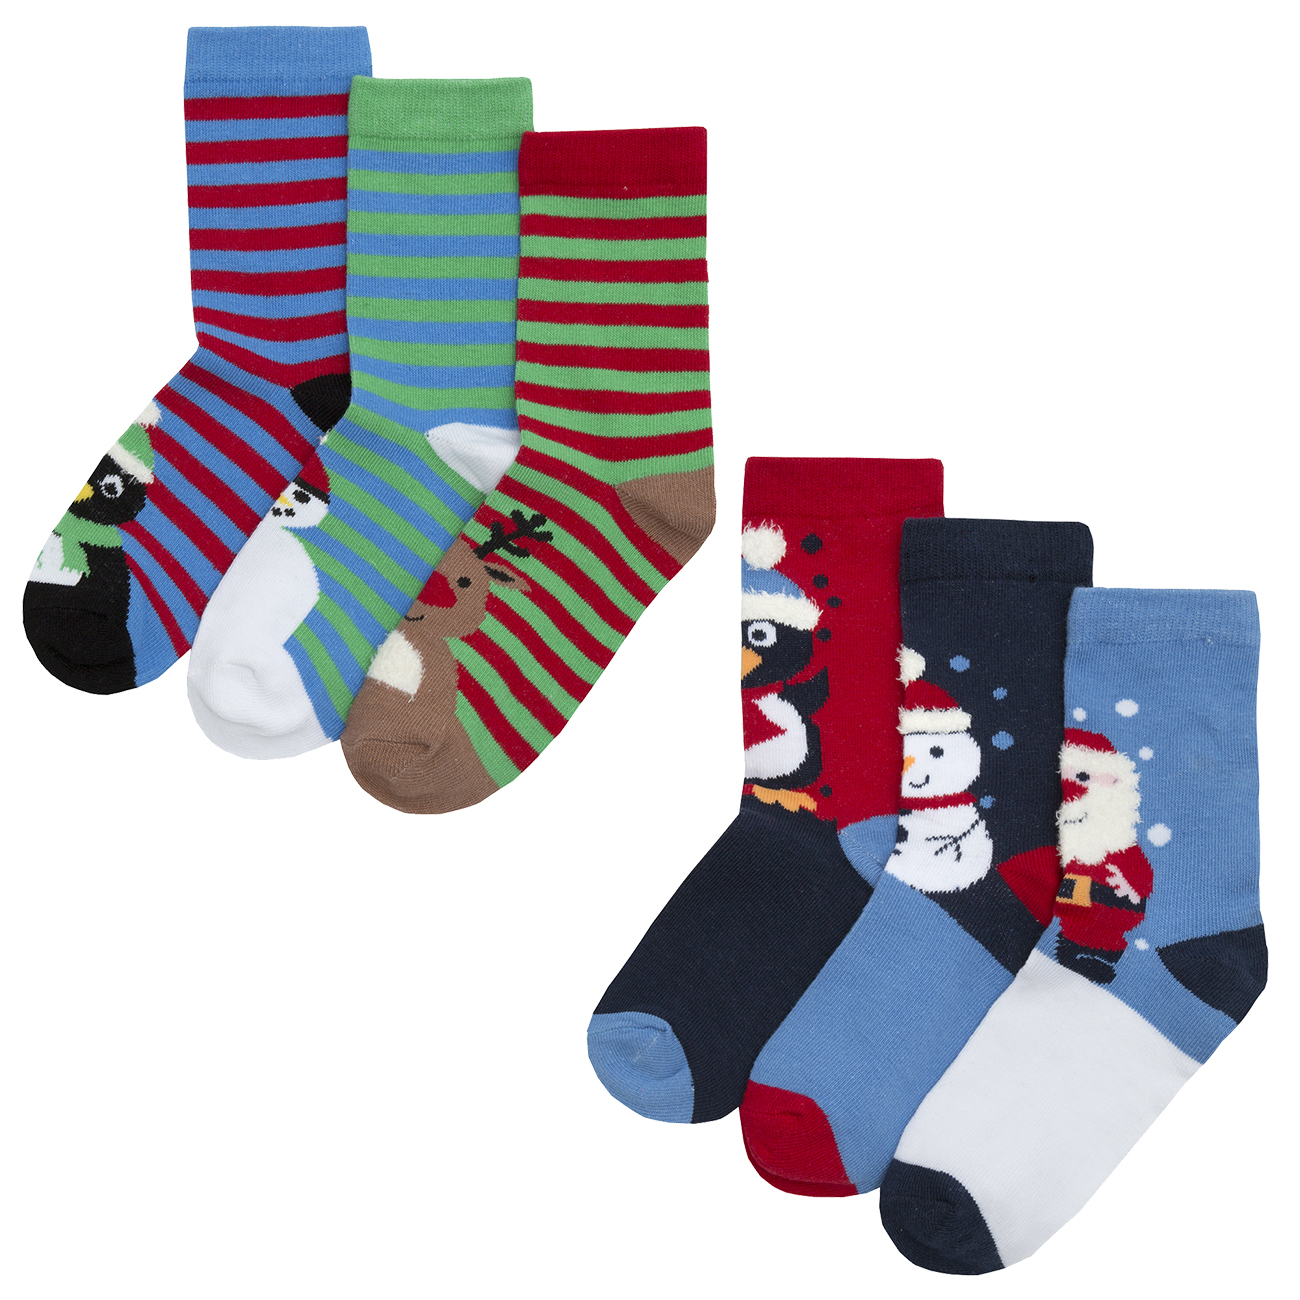 Boys Kids Childrens Christmas Socks Xmas Festive Cotton Rich 6 Pairs ...